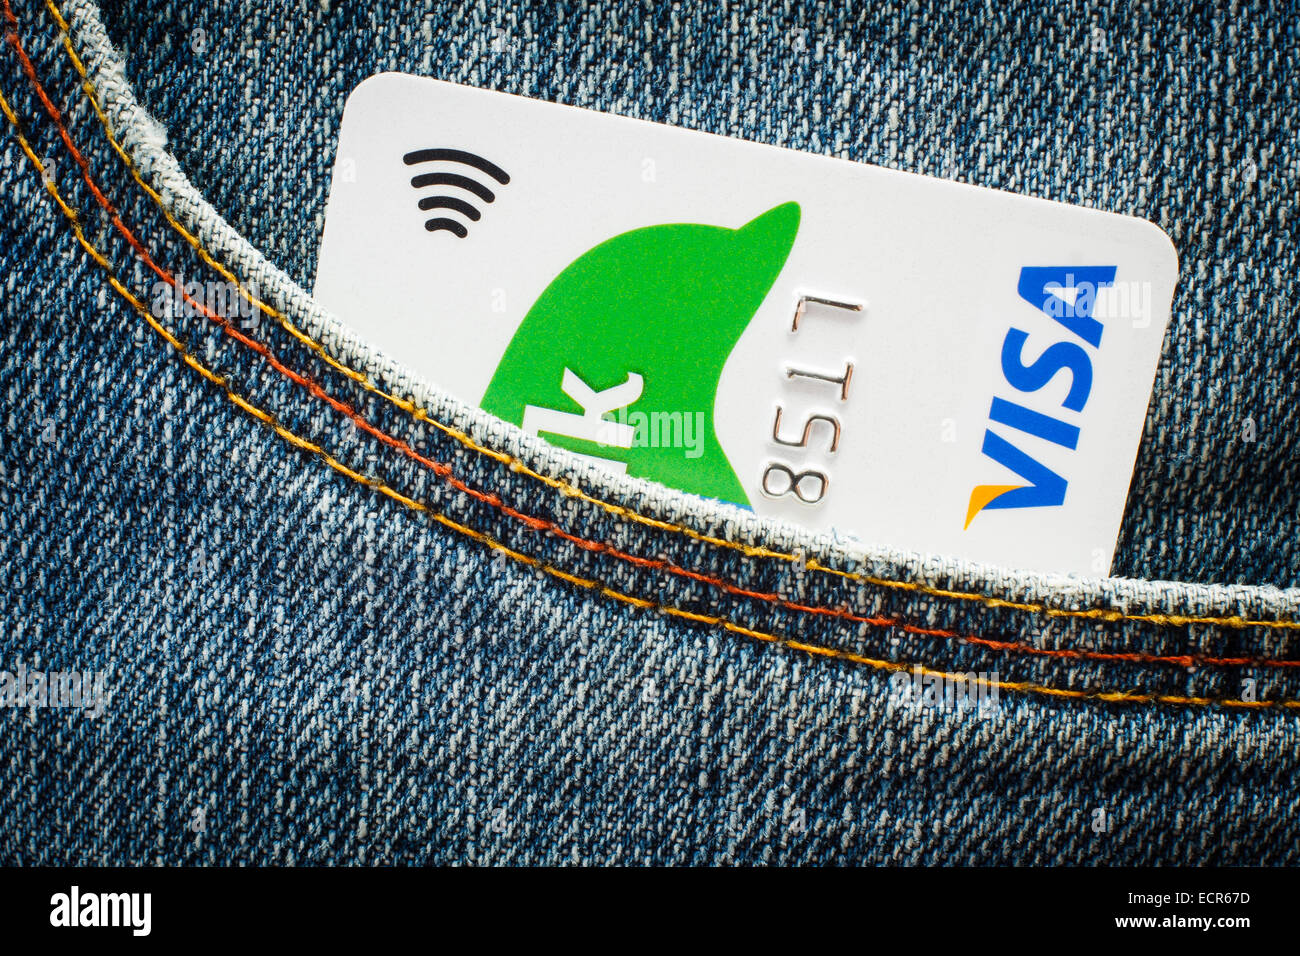 Visa credit card with paypass technology in jeans pocket. Editorial use only - Stock Image